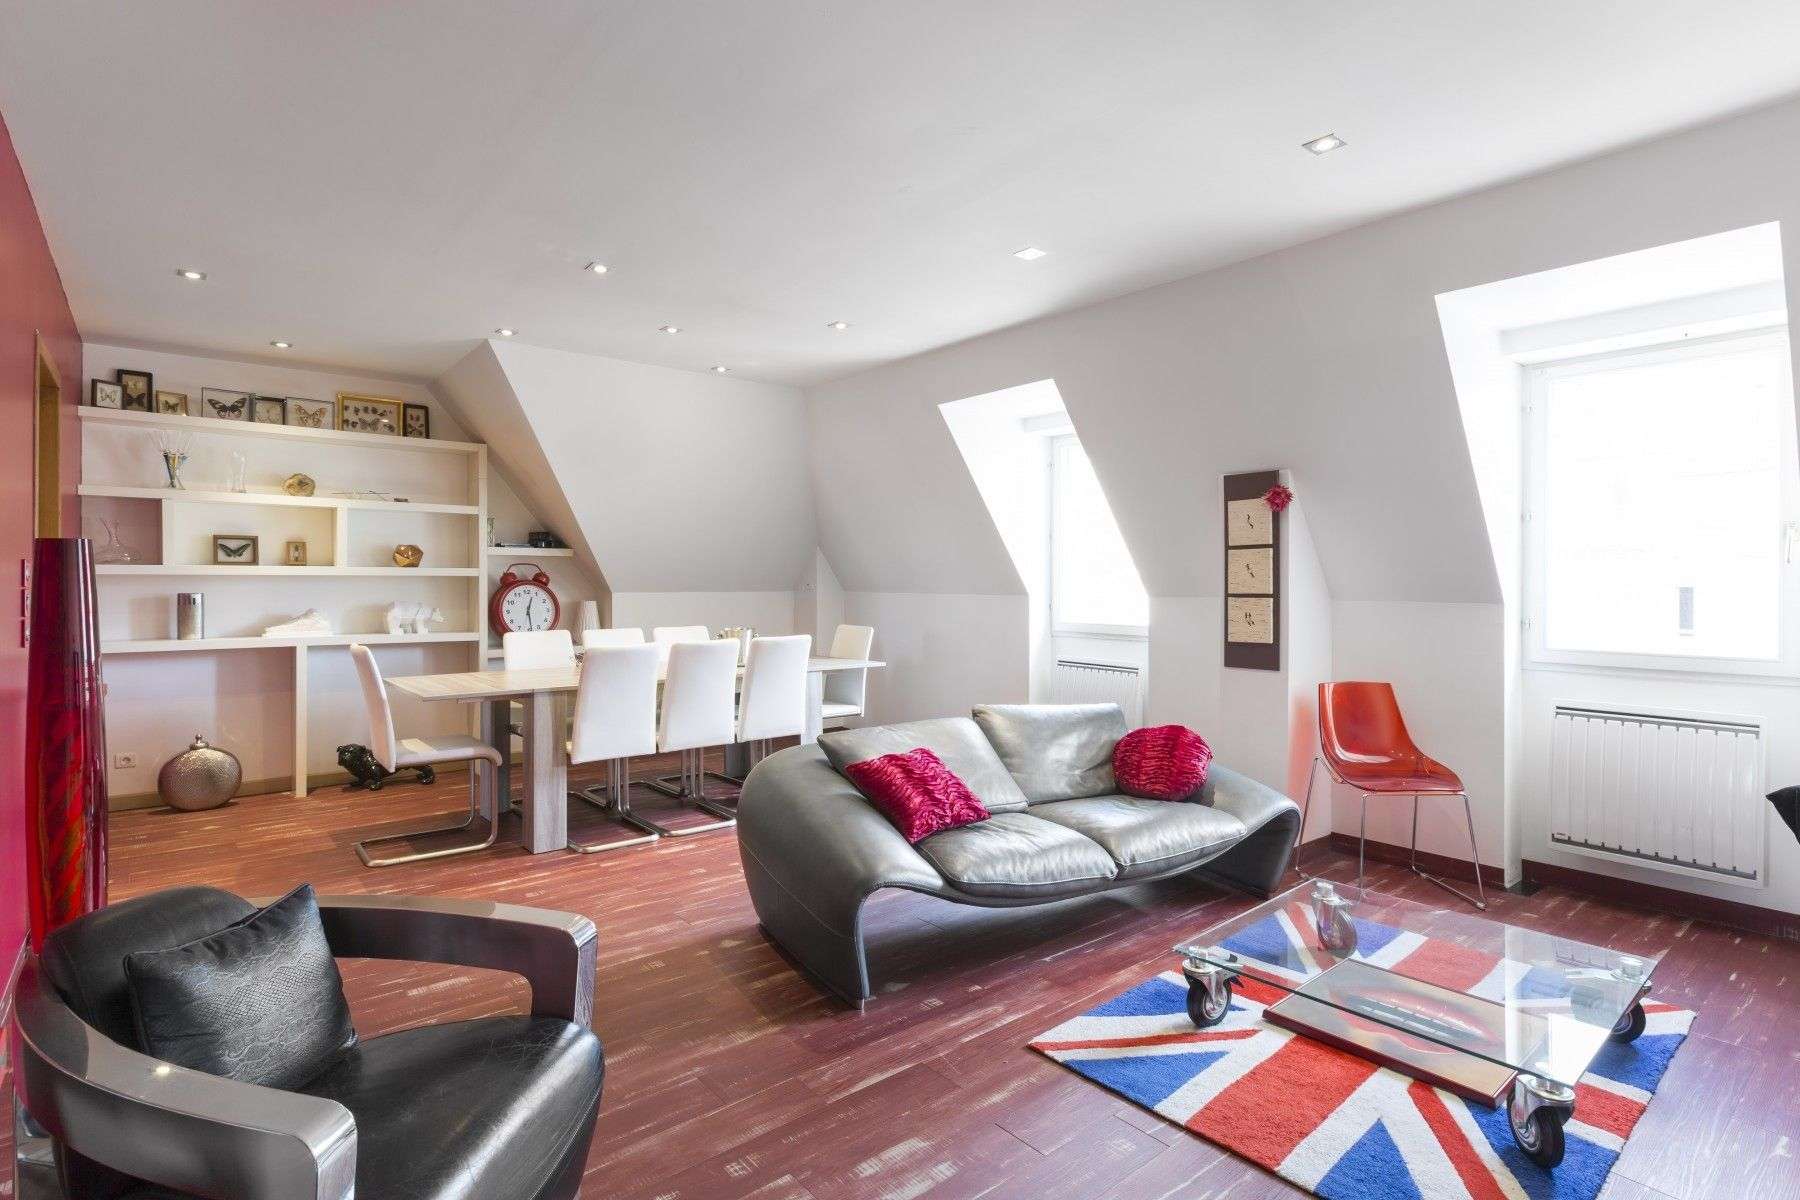 Flat with parking included in Saint-malo